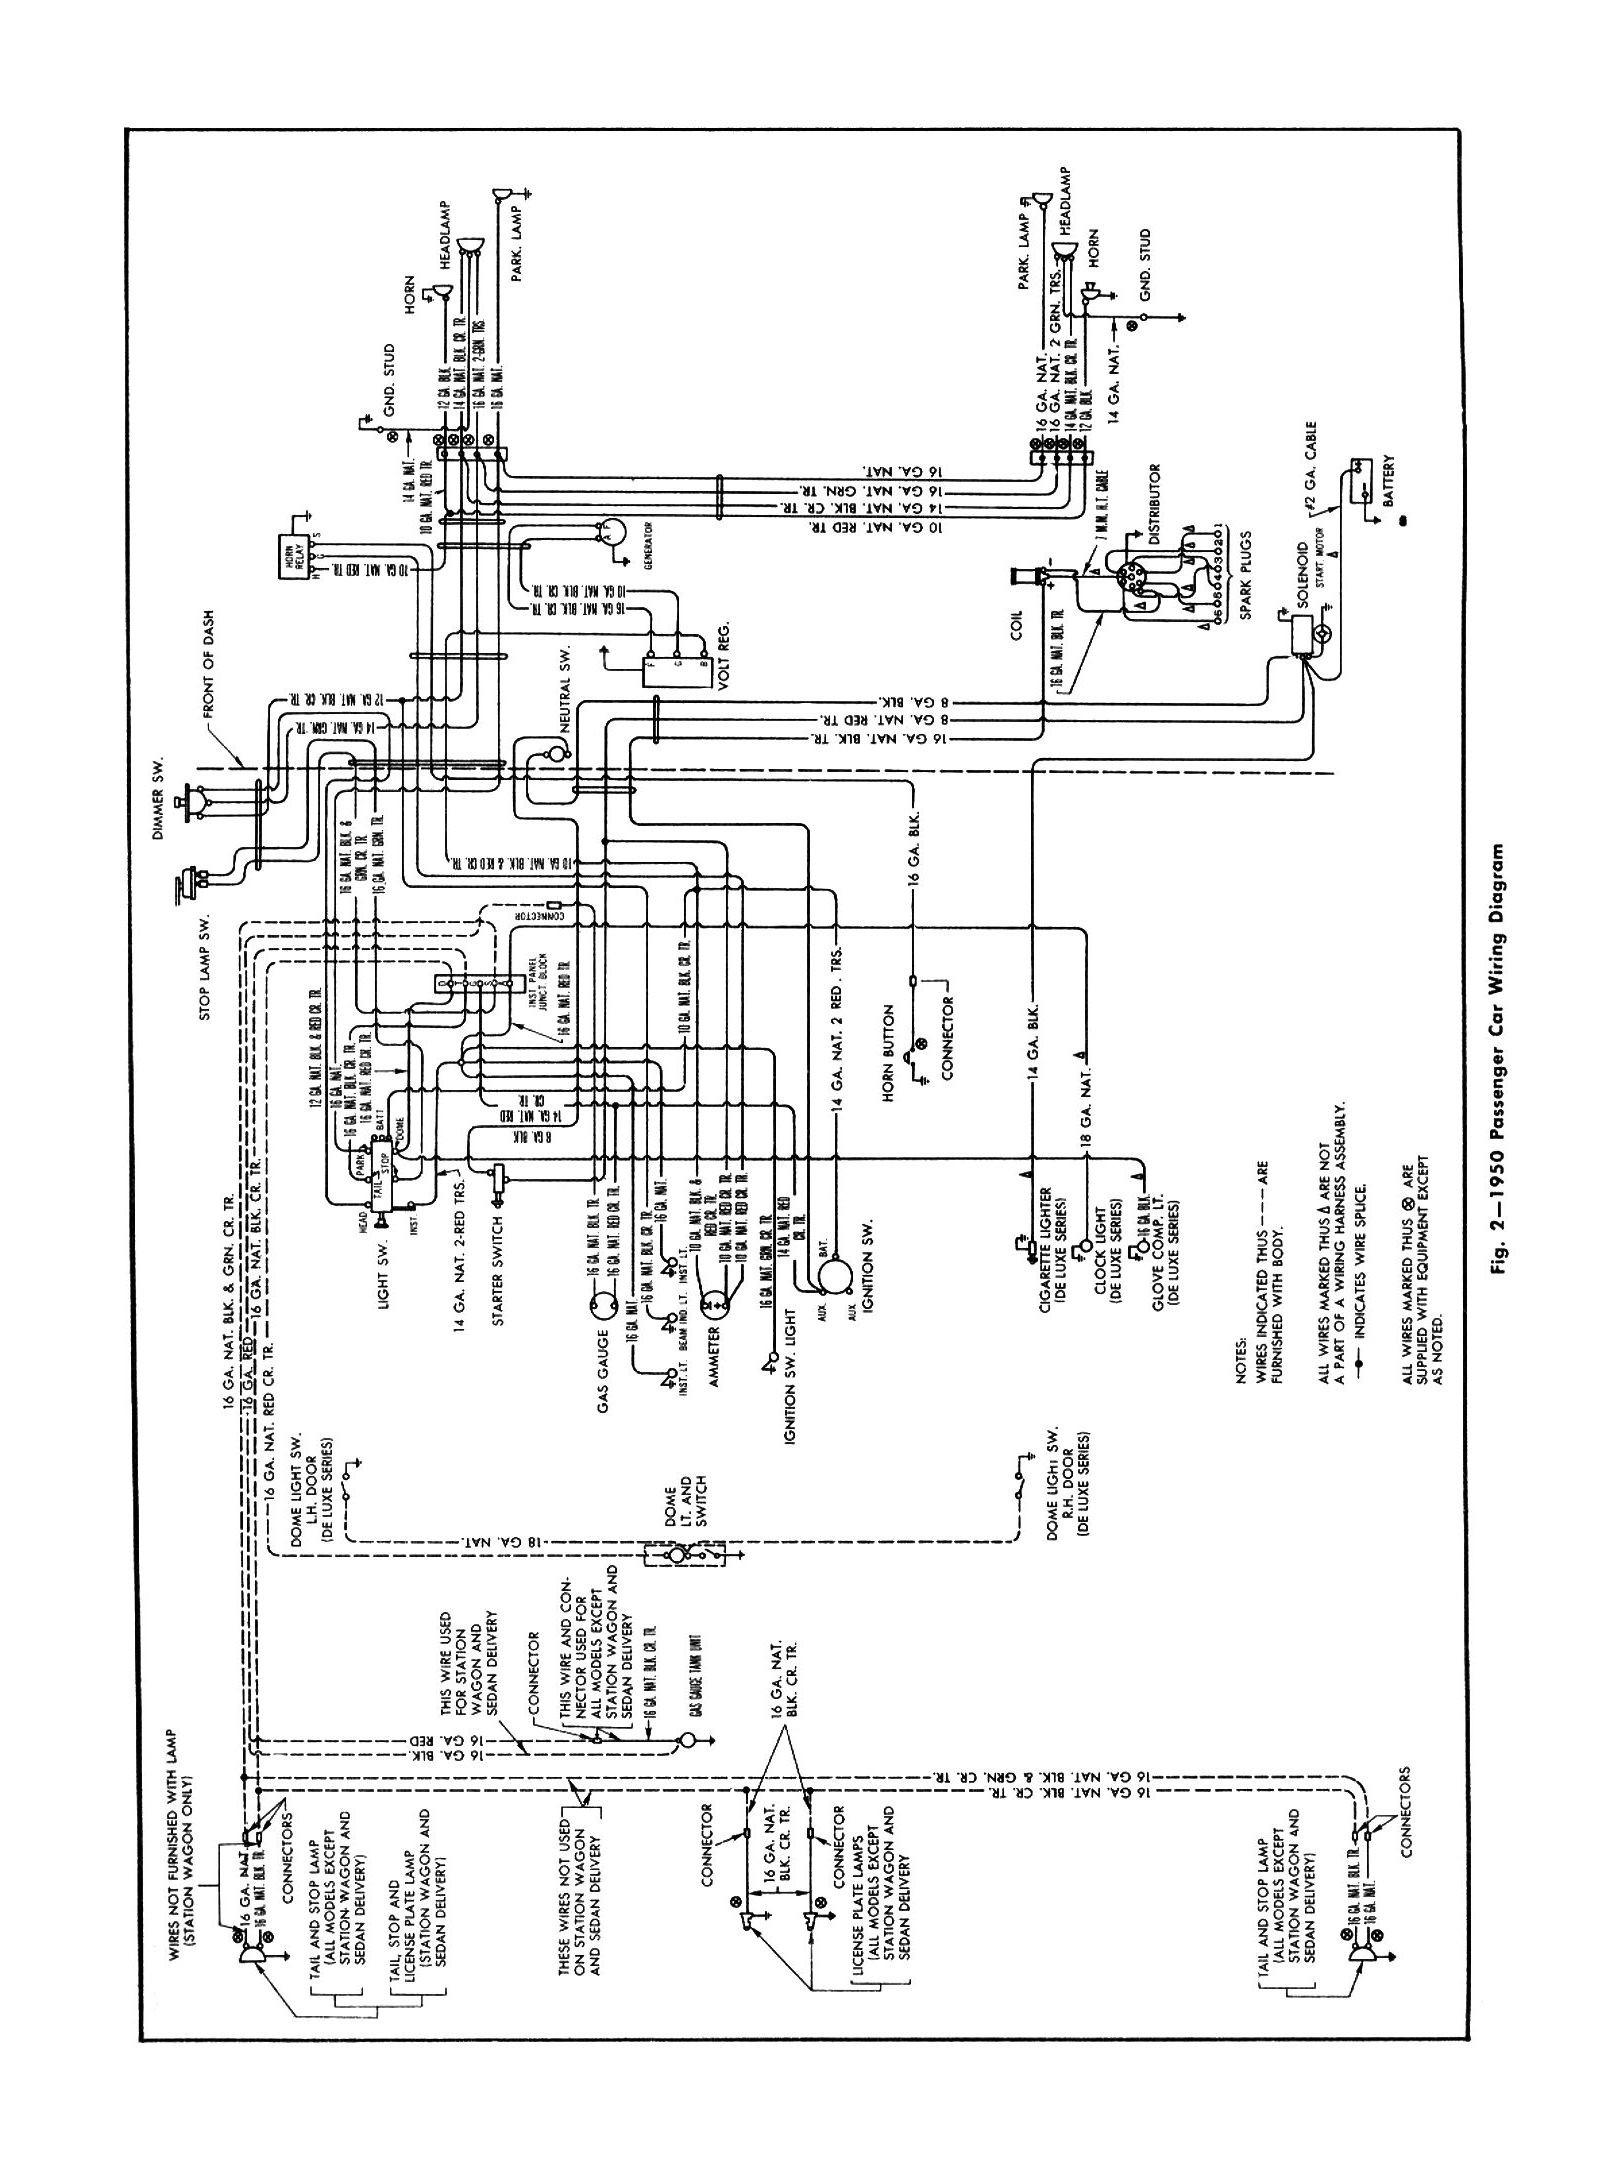 General Washing Machine Wiring Diagram Archive Of Automotive Kenstar Diagrams Schematics Rh Thyl Co Uk